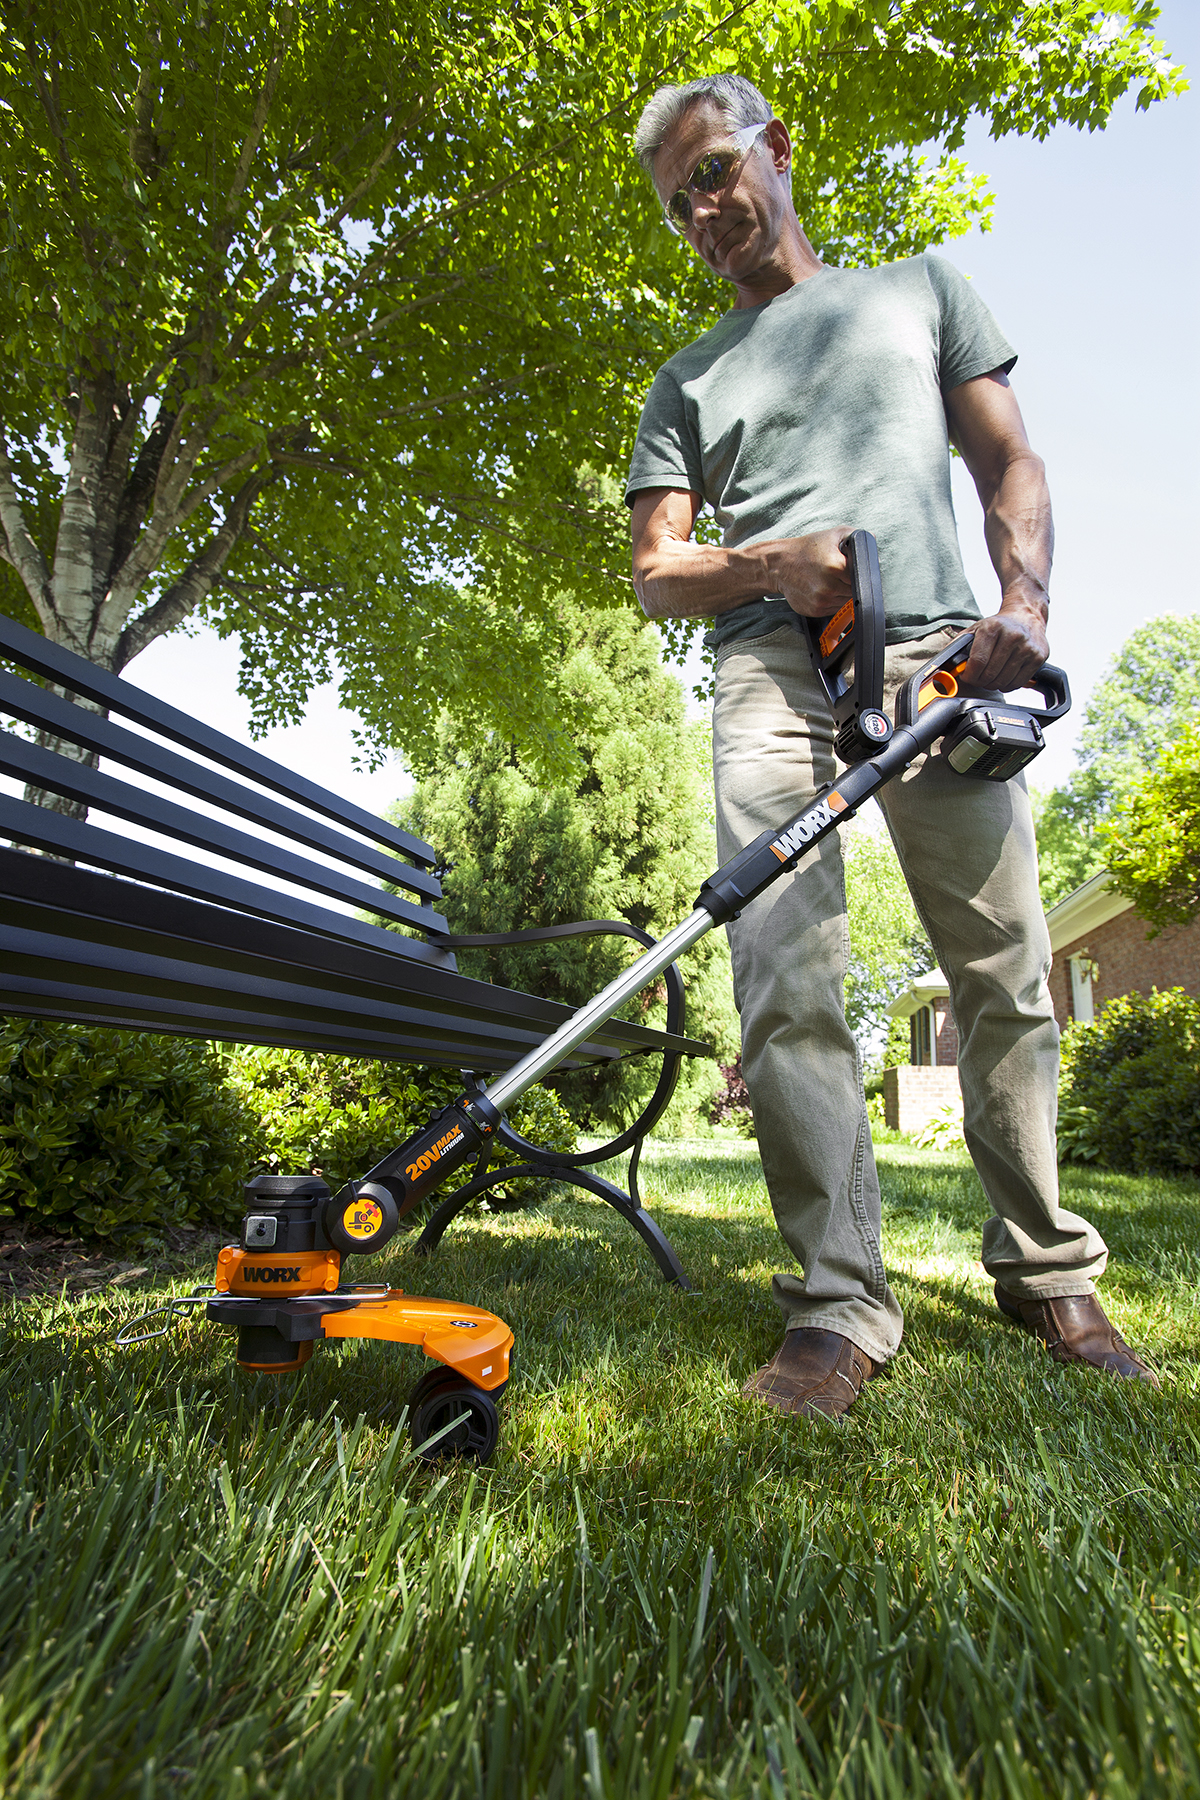 Worx Gives Cordless Lawn Care A Power Boost With New 32v